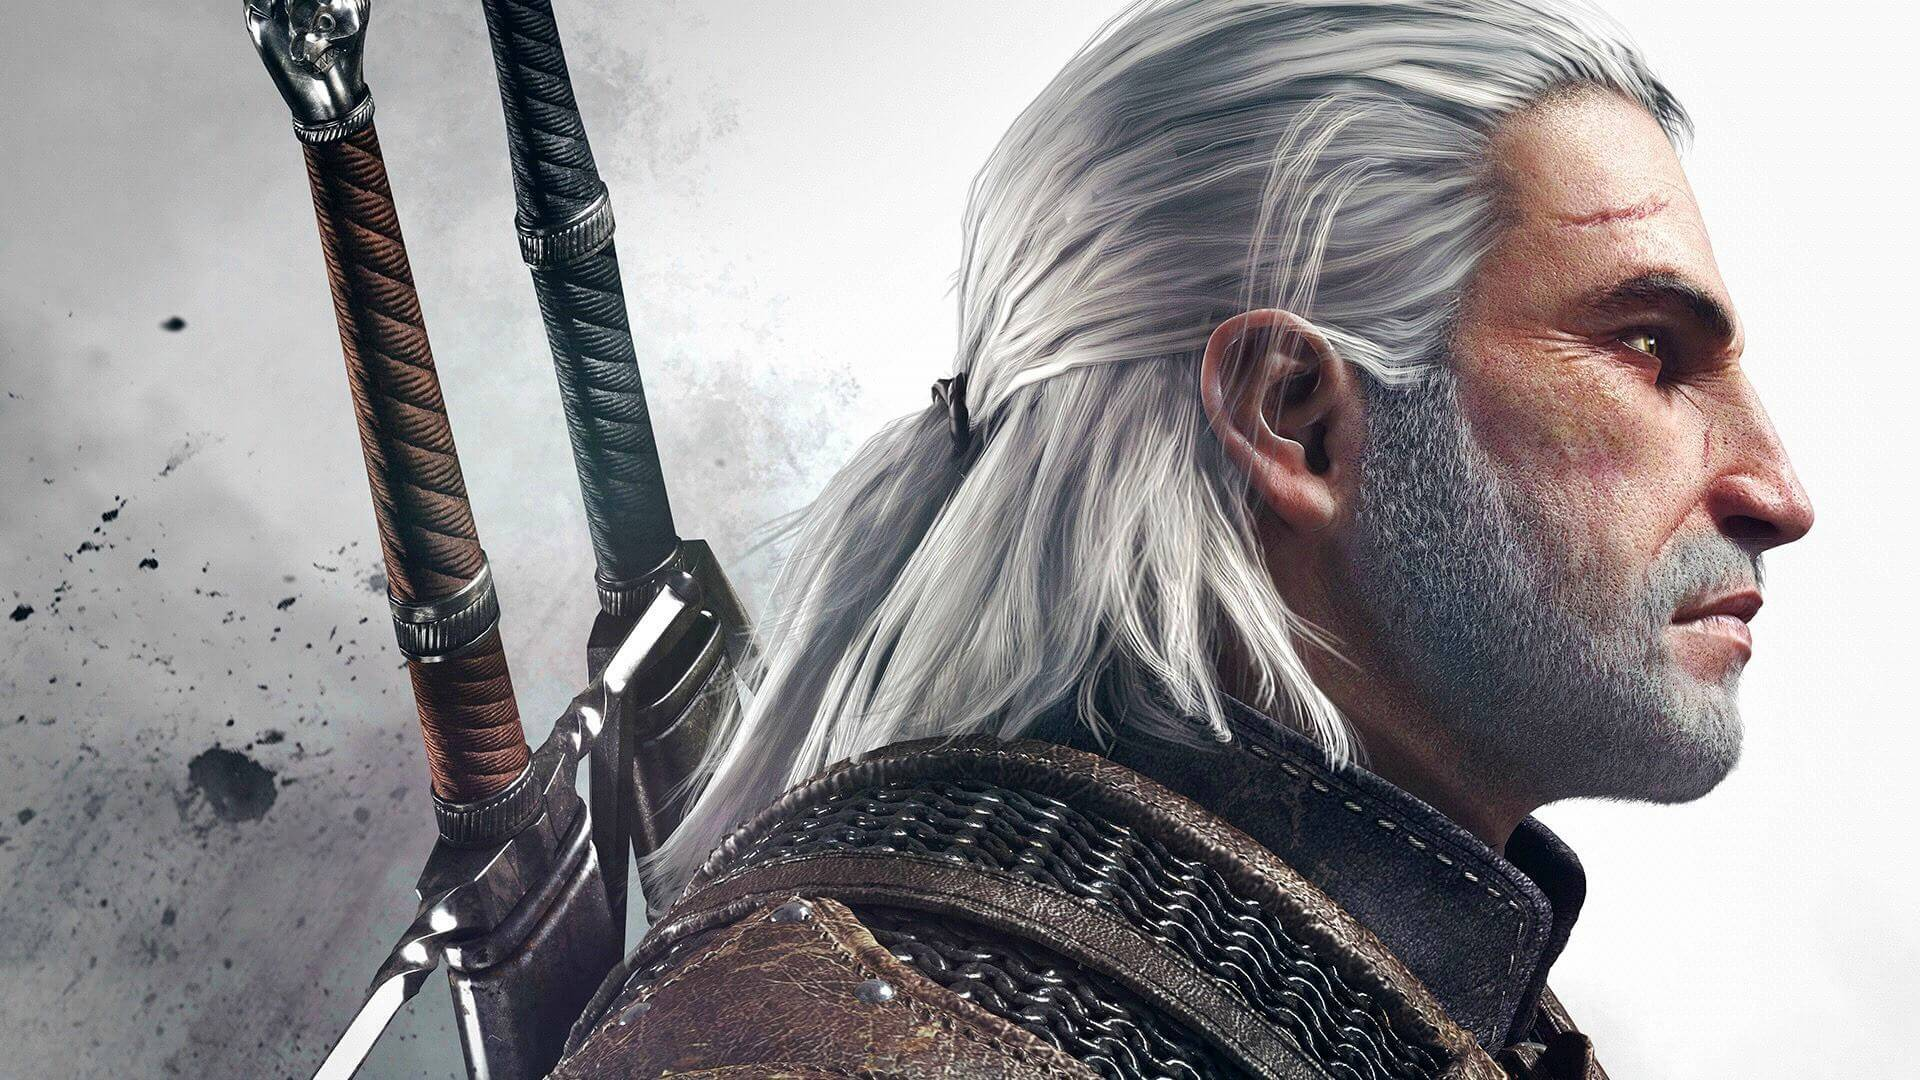 Henry Cavill will play The Witcher's Geralt in upcoming